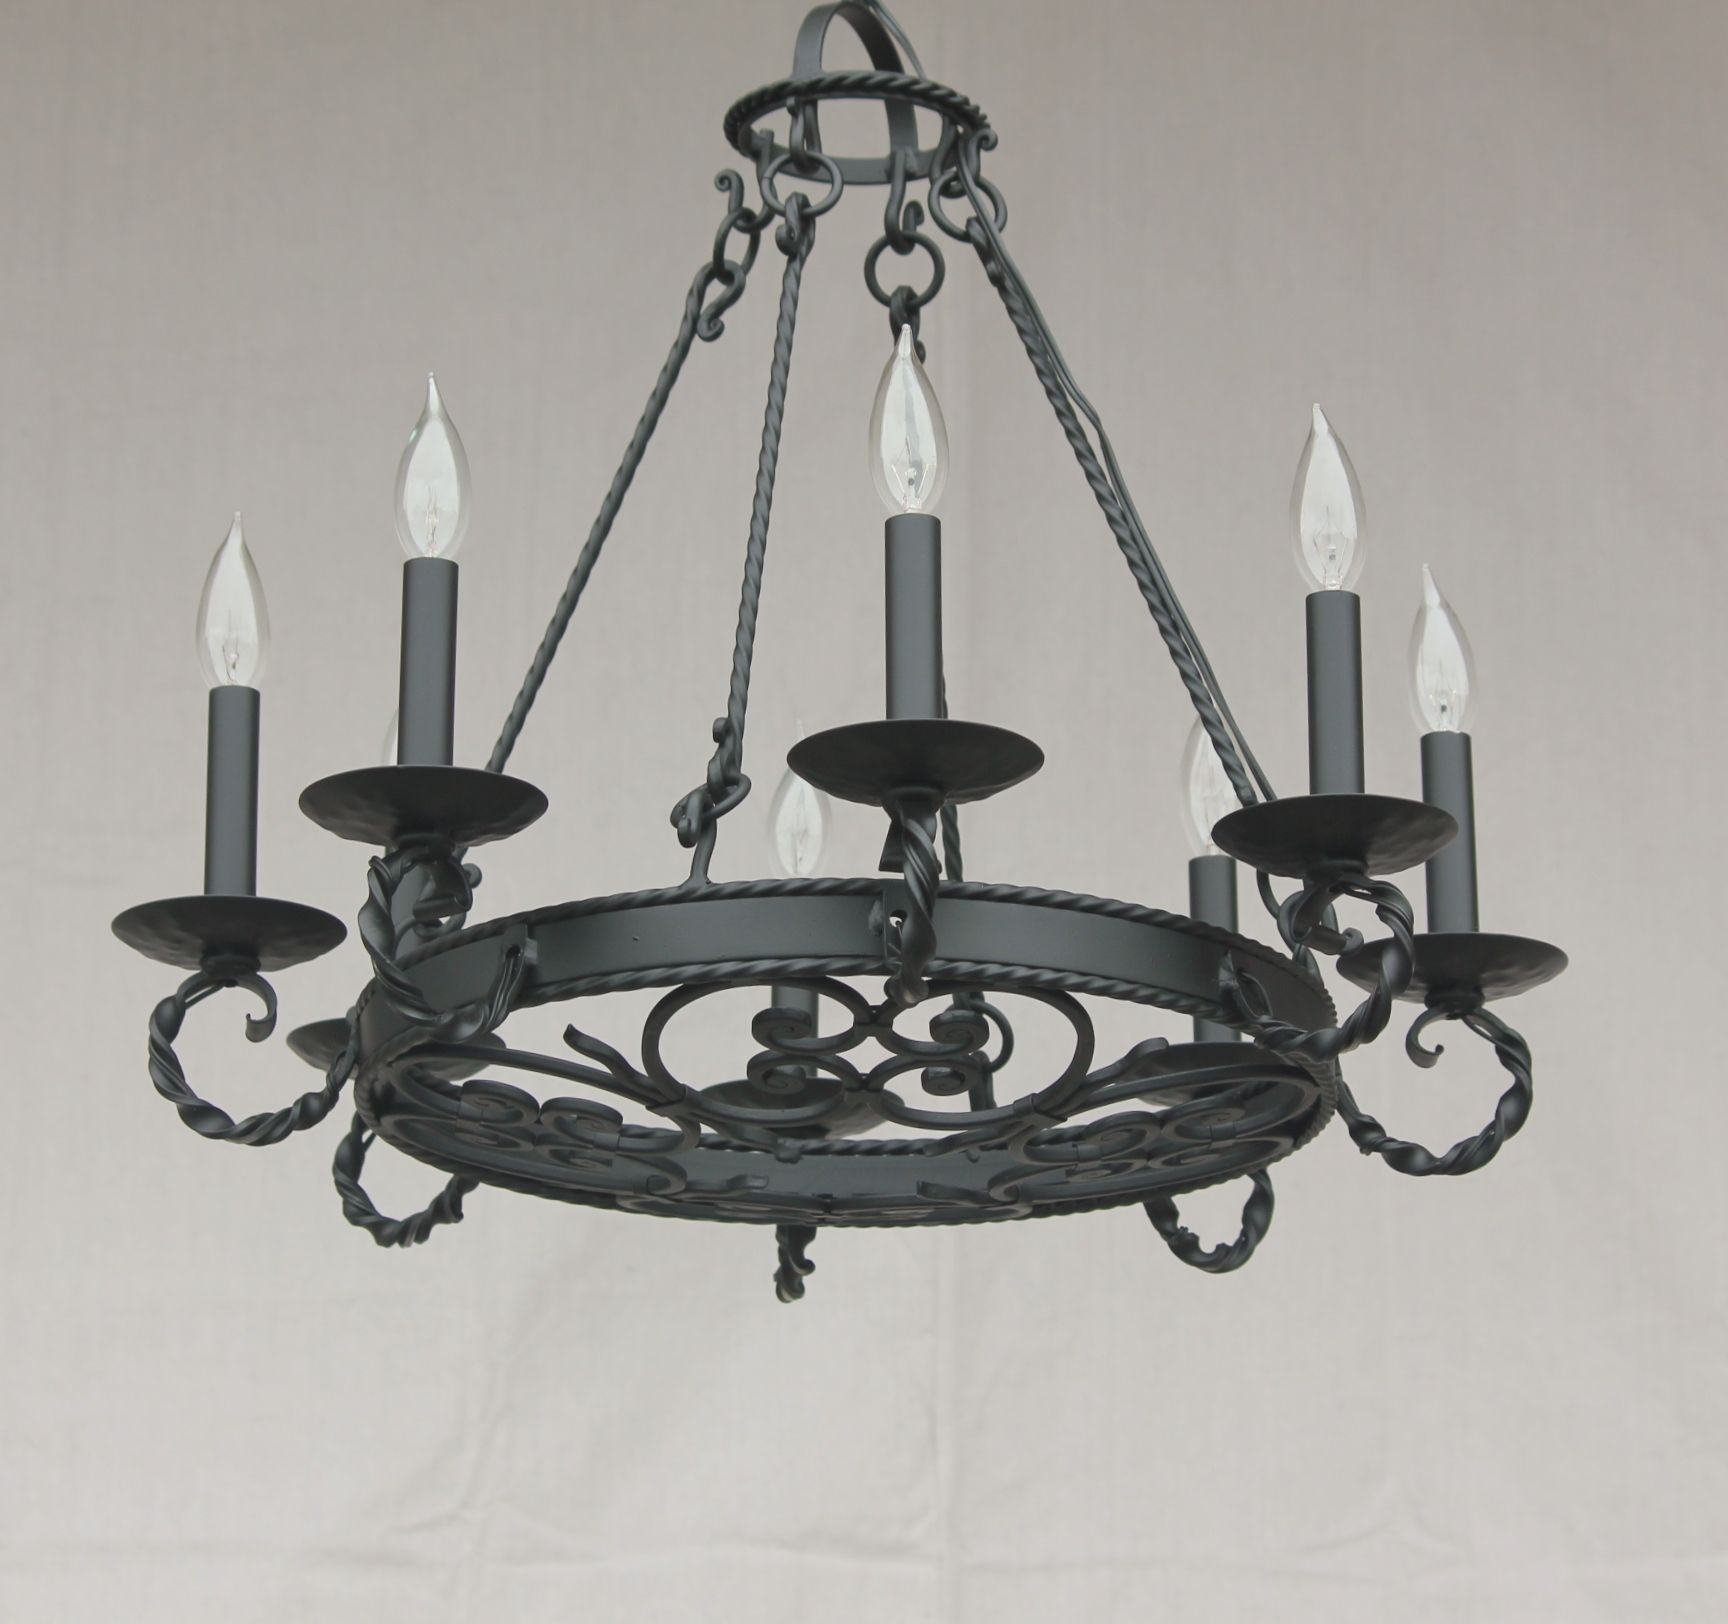 Lights Of Tuscany 1388 8 Spanish Style Wrought Iron Chandelier